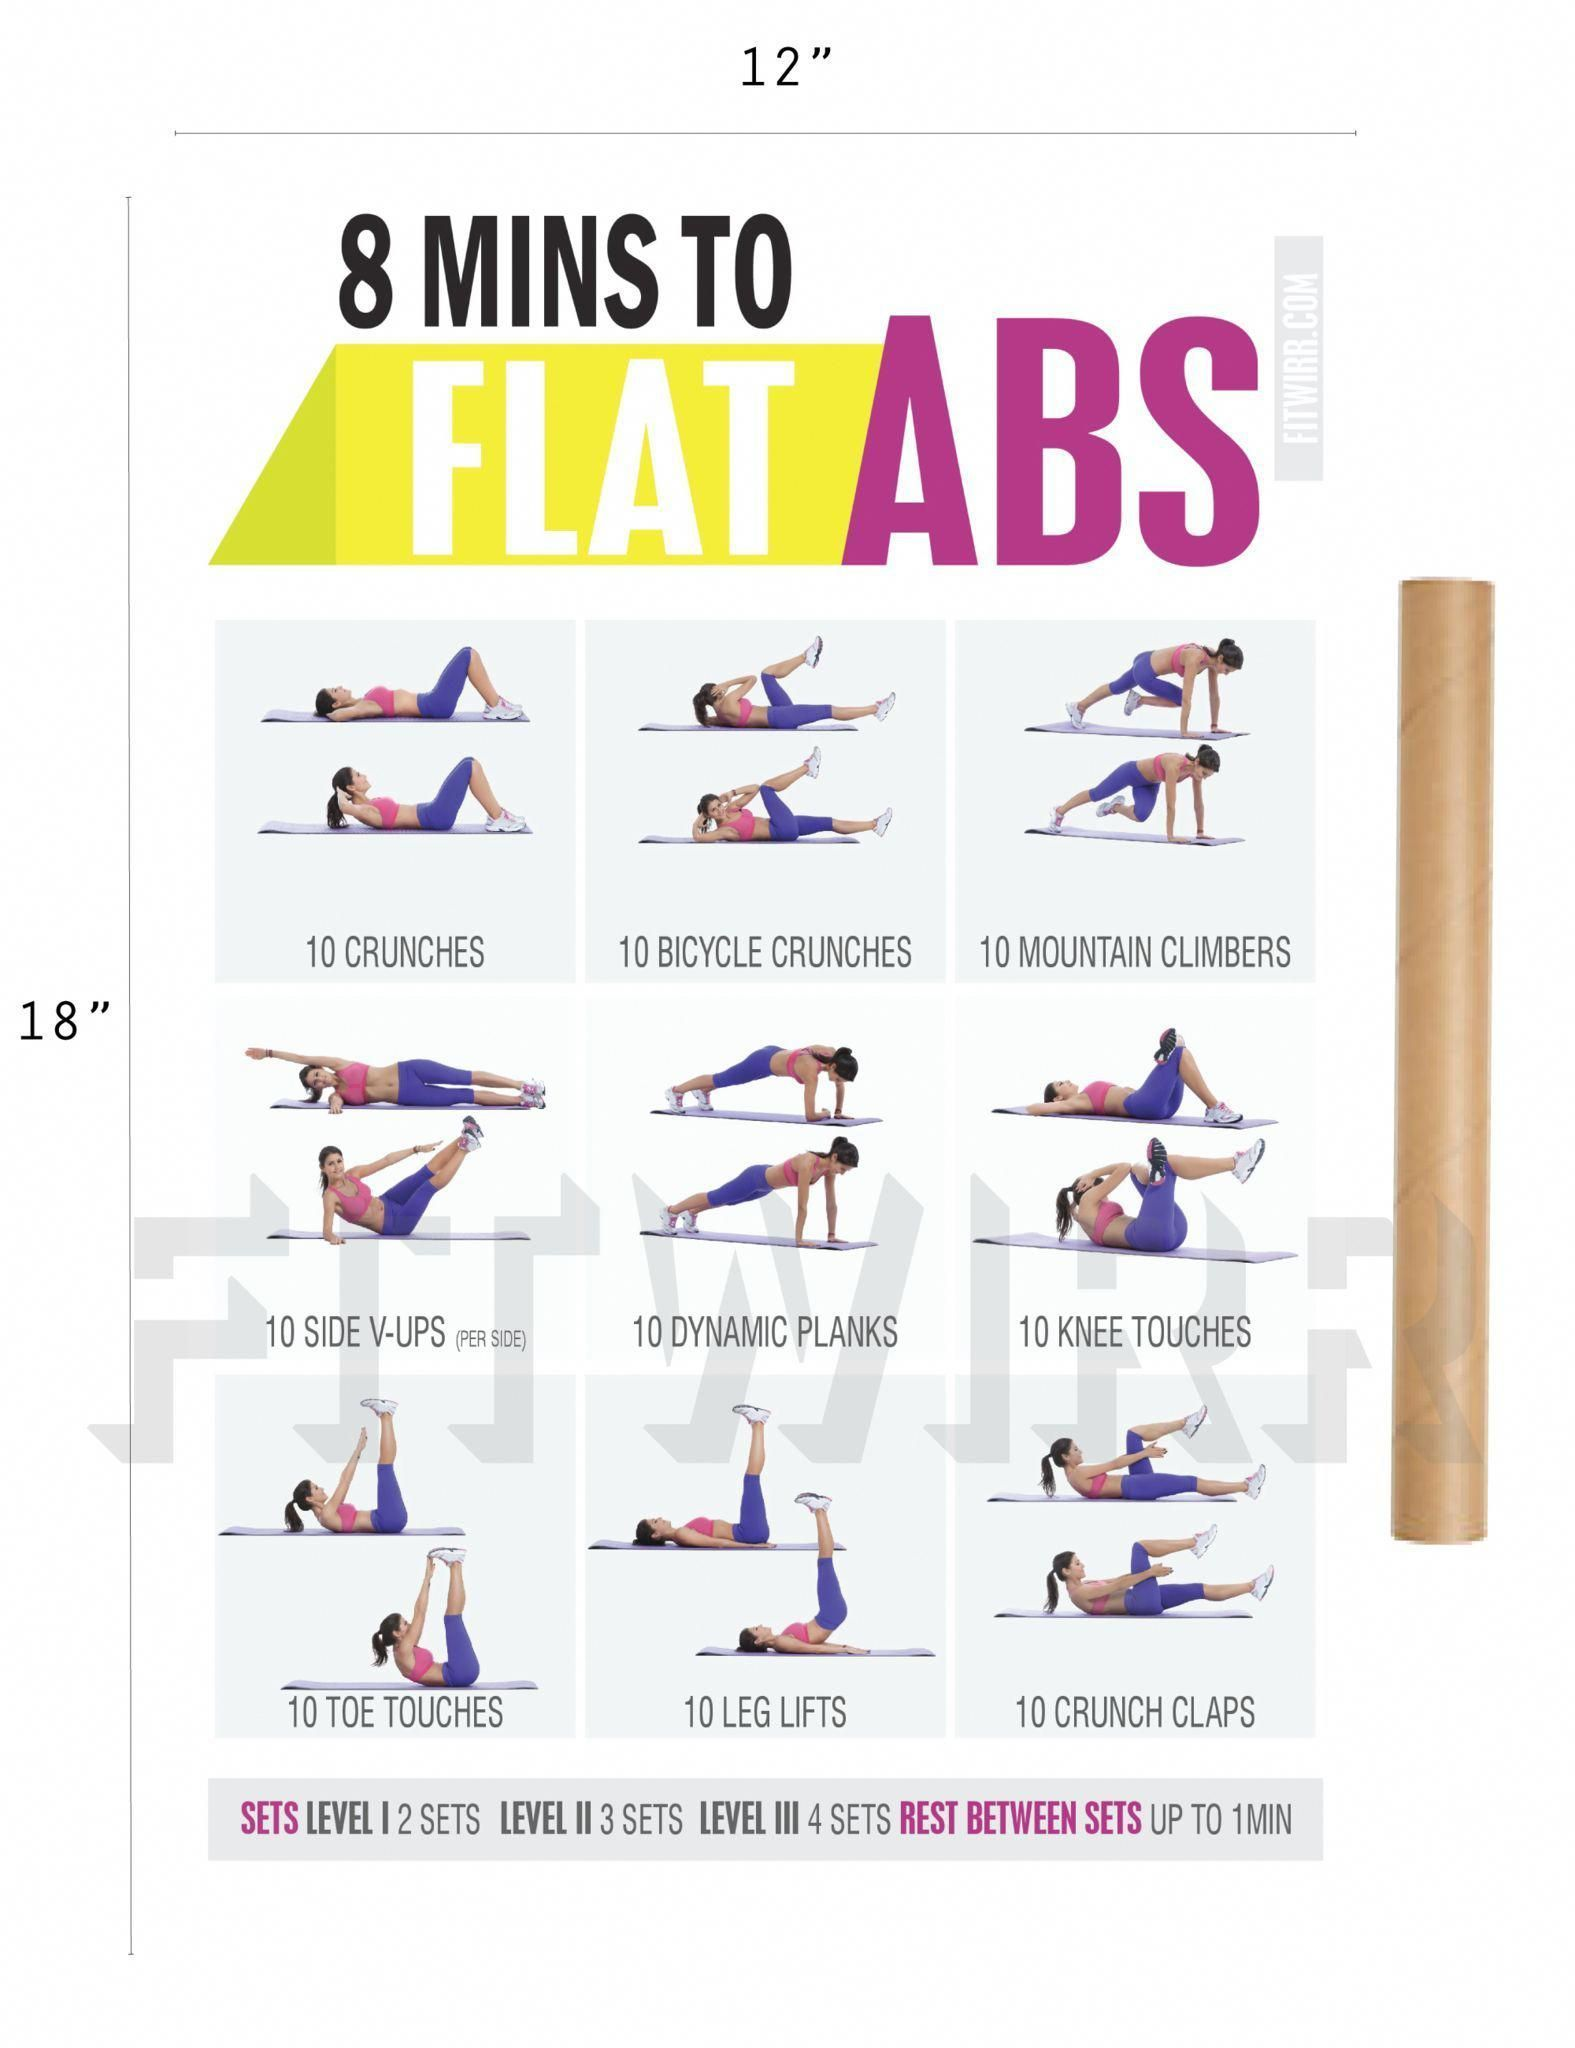 8 Minute Abs Workout Poster for Women. #AbsWorkout #exercise #fitness #howtobeabodybuilder #photogra...